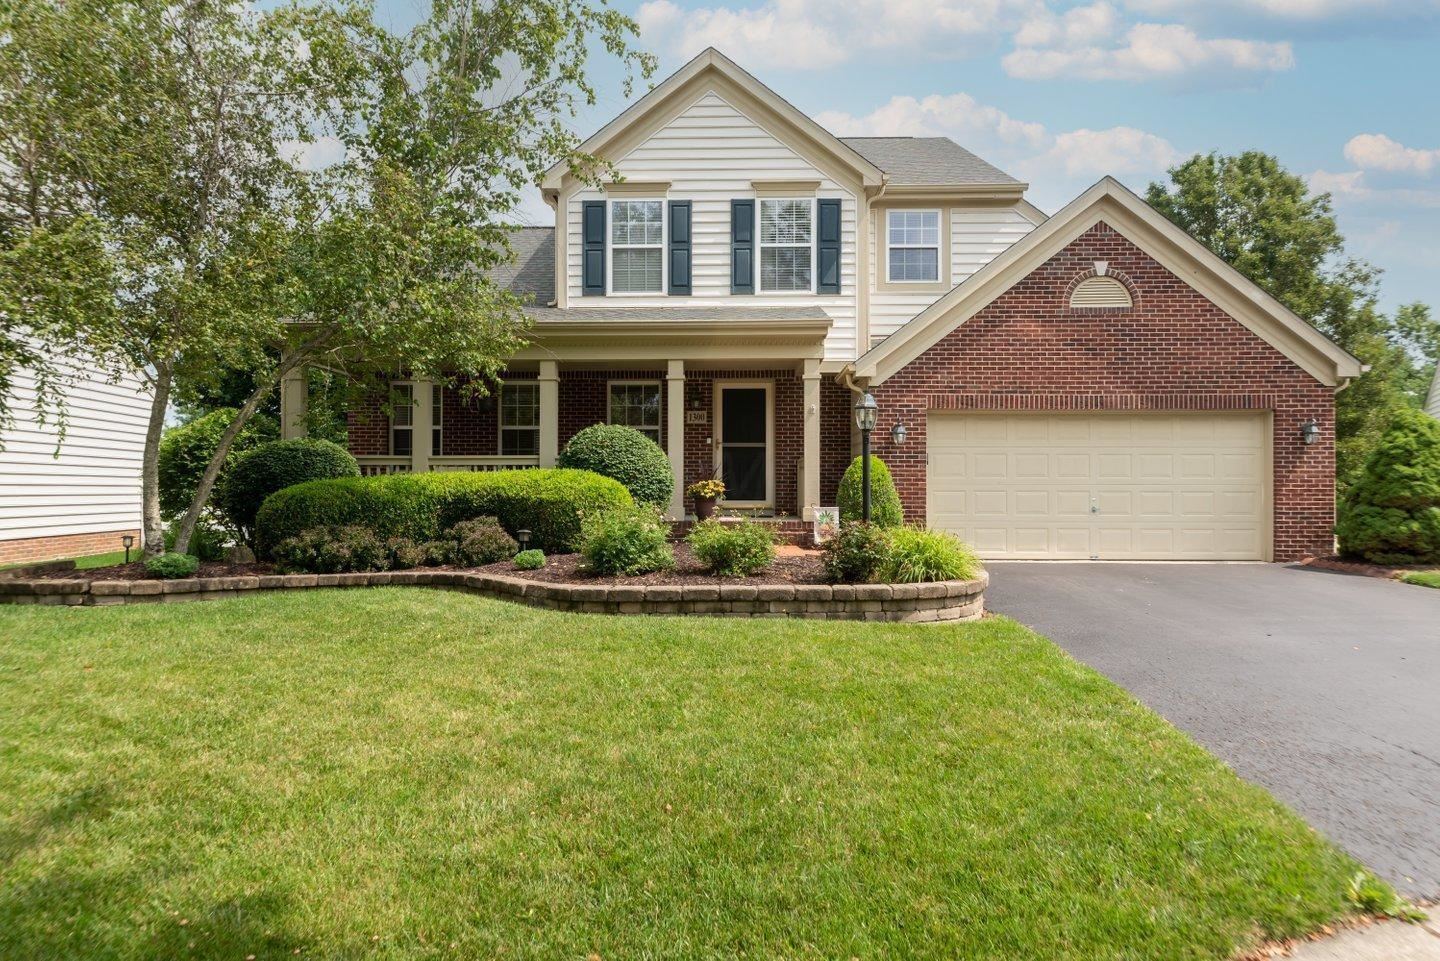 Photo of 1300 Totten Drive, New Albany, OH 43054 (MLS # 221026425)